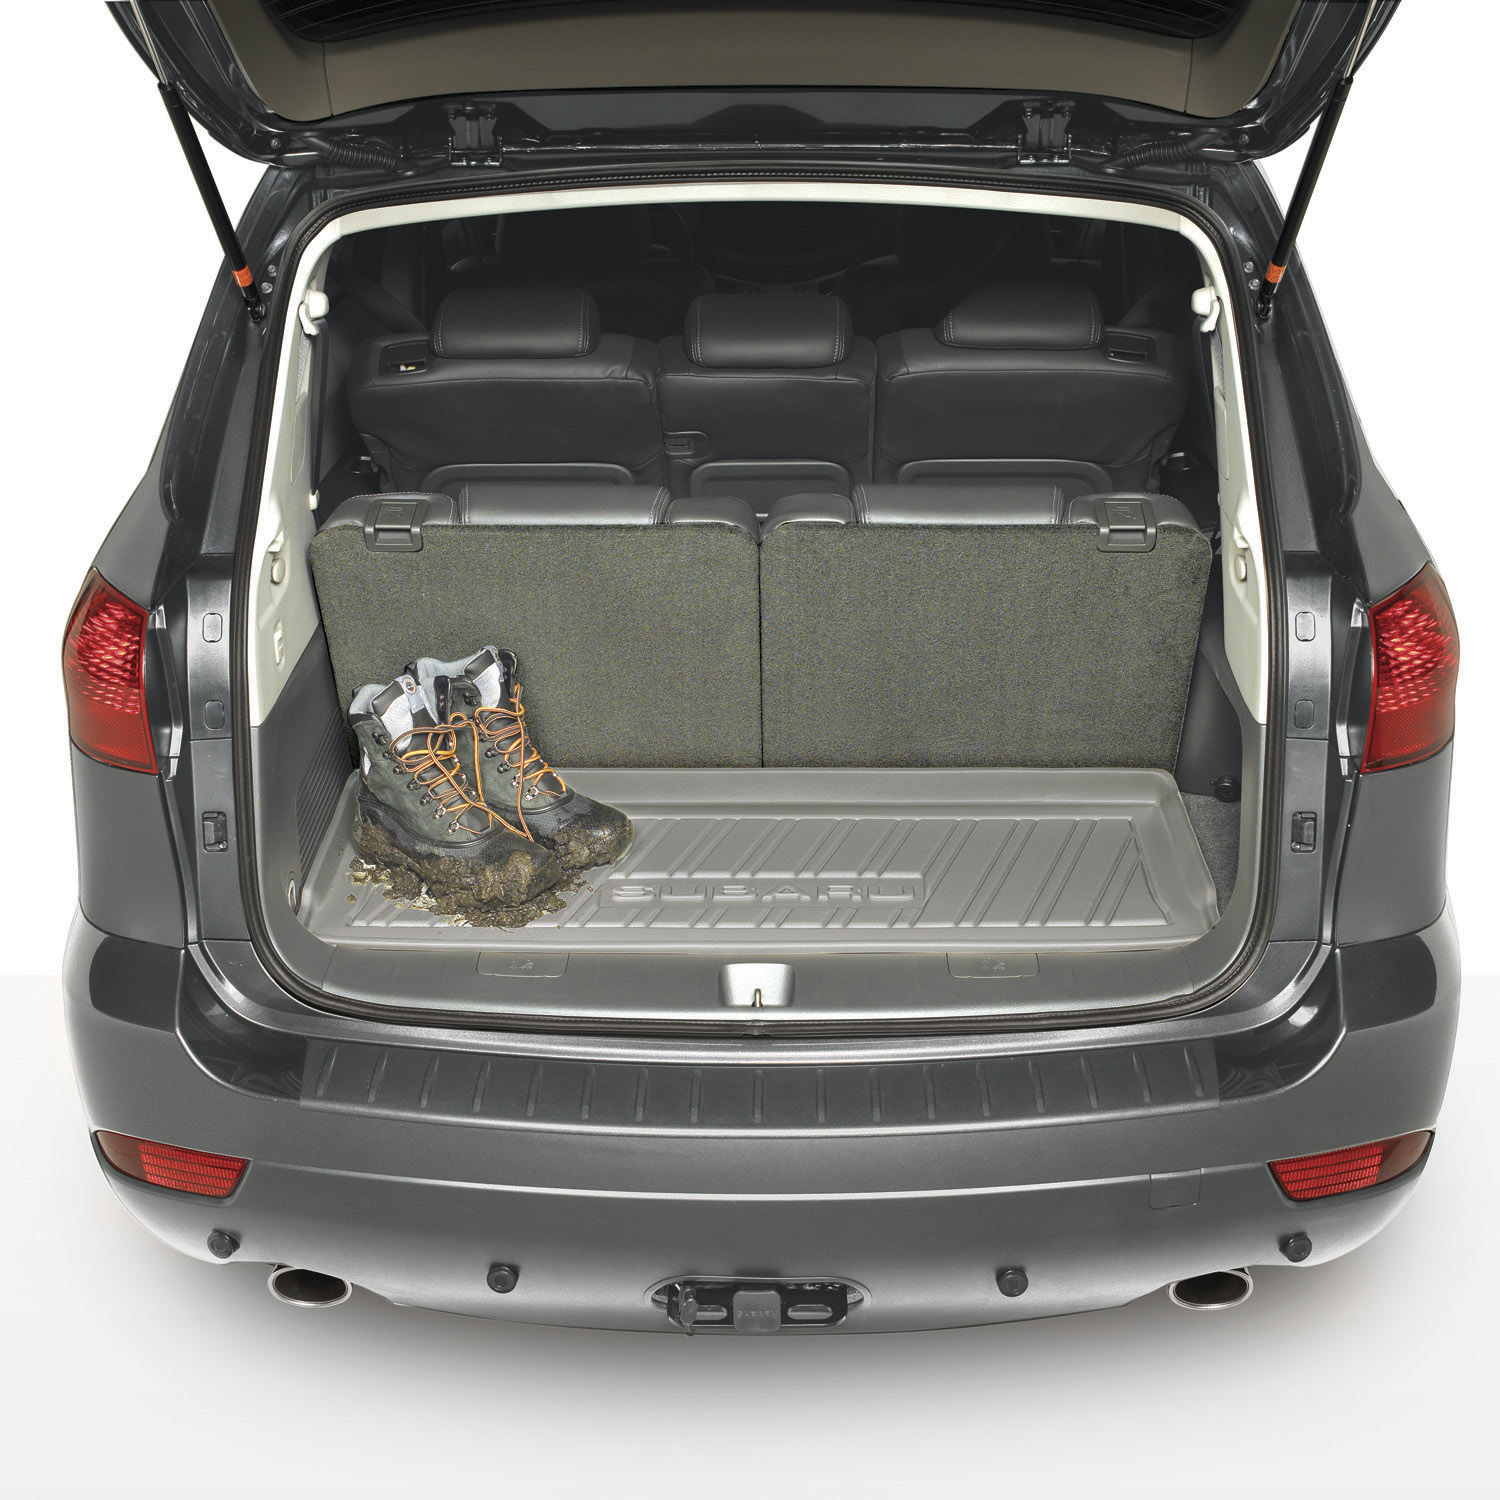 Shop genuine 2010 subaru tribeca accessories subaru of america cargo vanachro Images